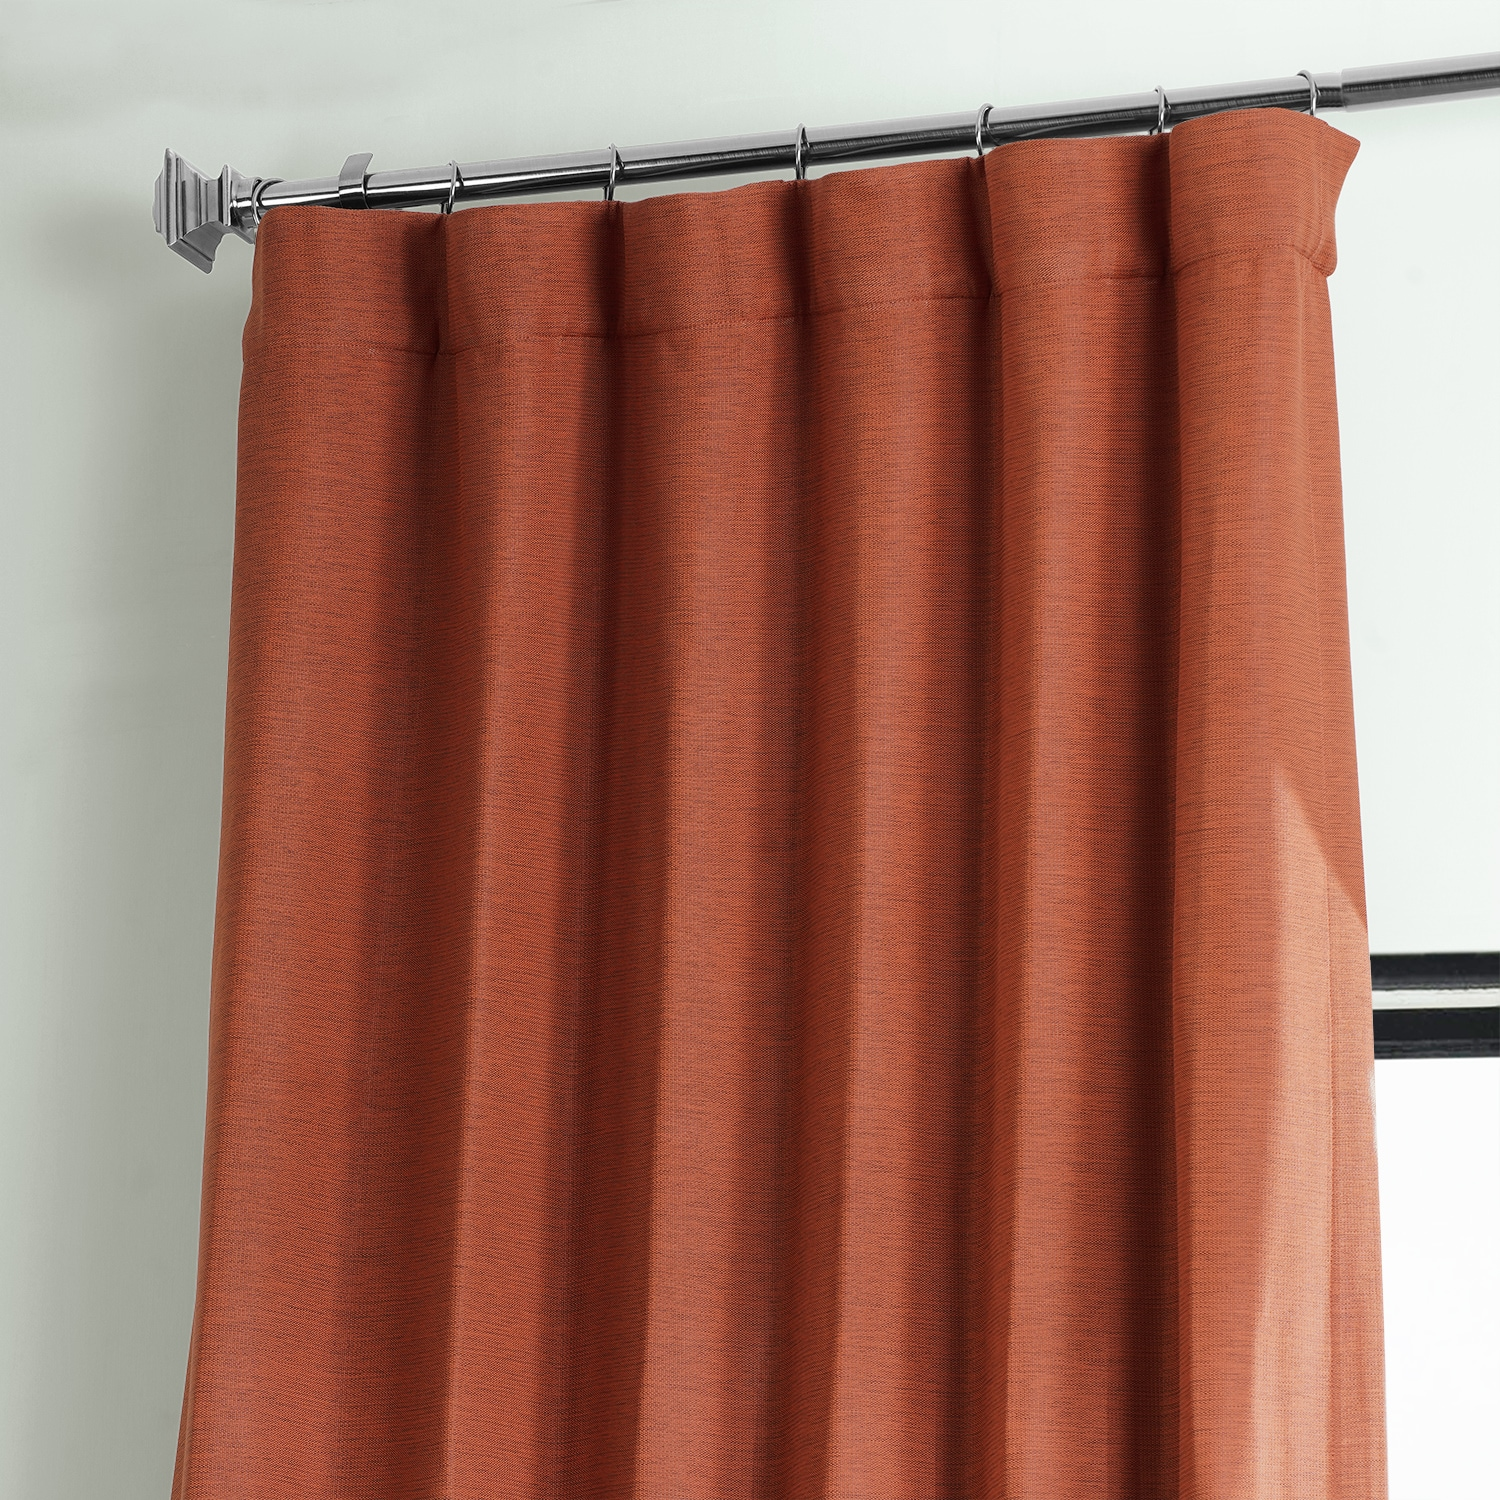 Warm Ember Bellino Blackout Room Darkening Curtain